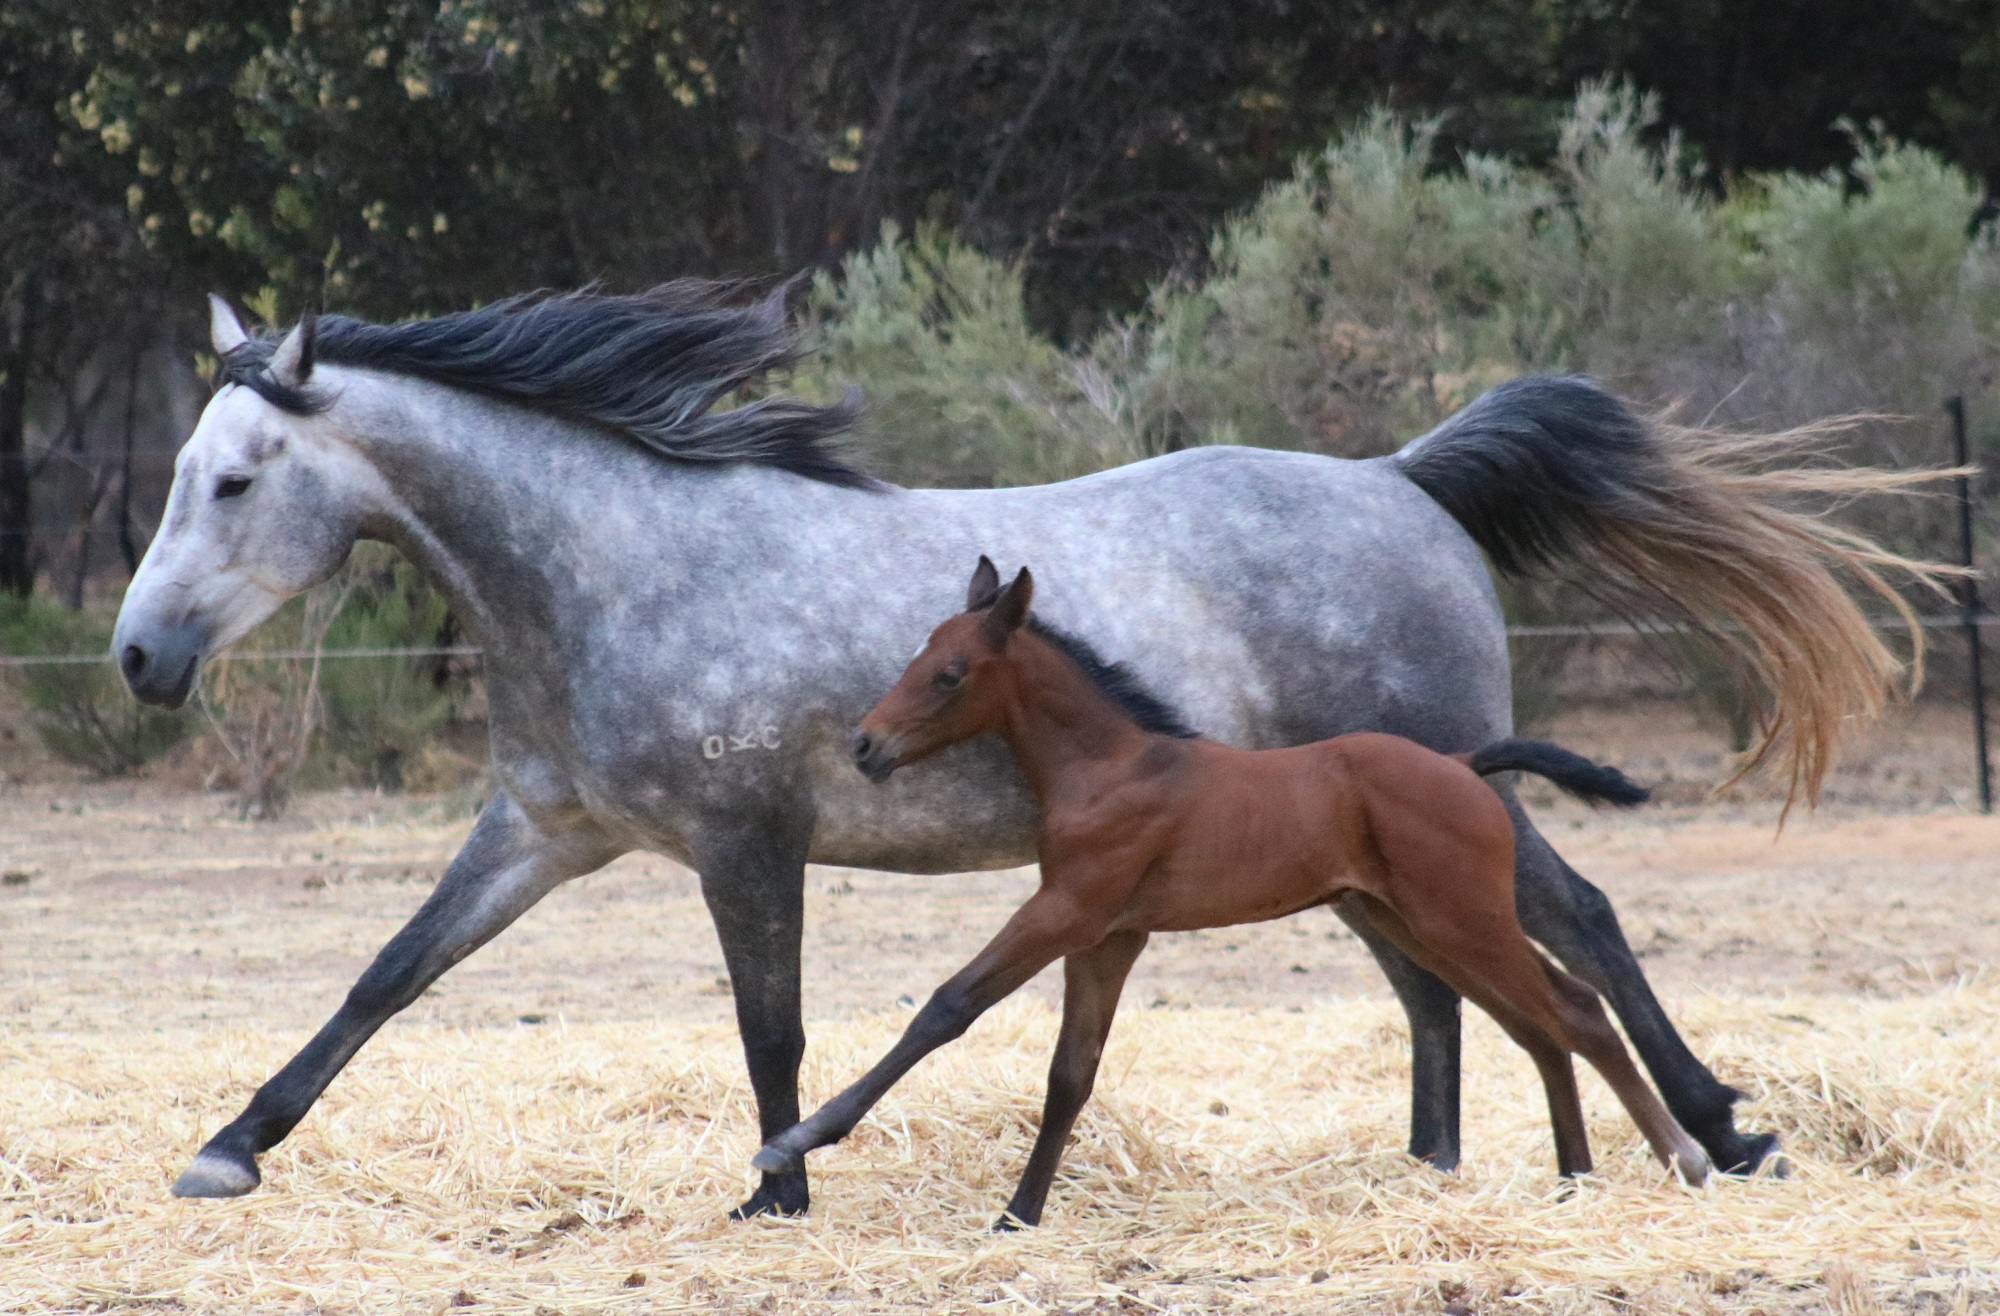 IMG 5723 crop email 2018 Foals